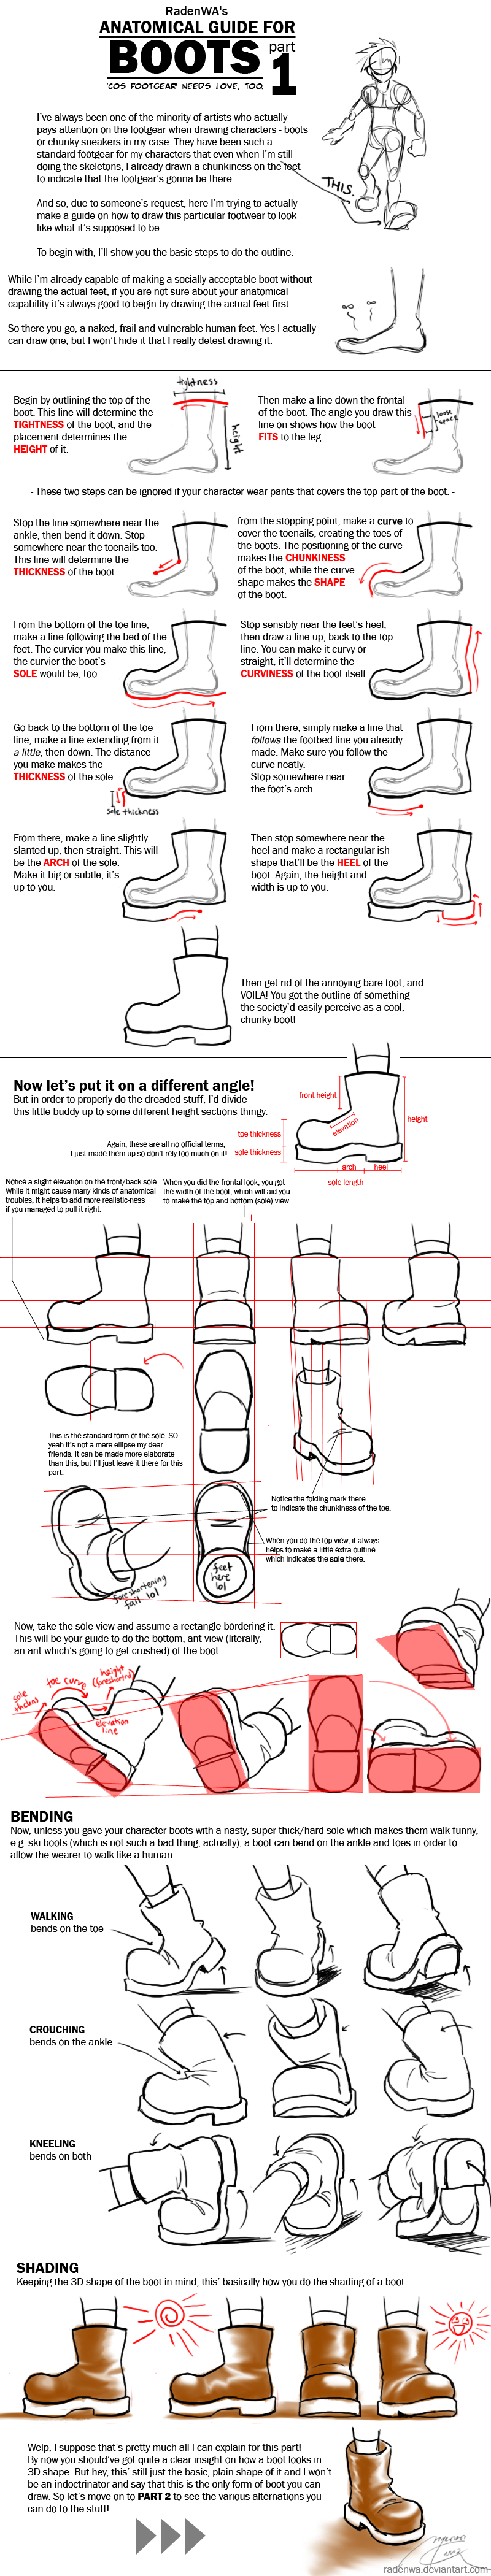 wa__s_boot_anatomy_tutorial_pt1_by_radenwa-d3k8u2z